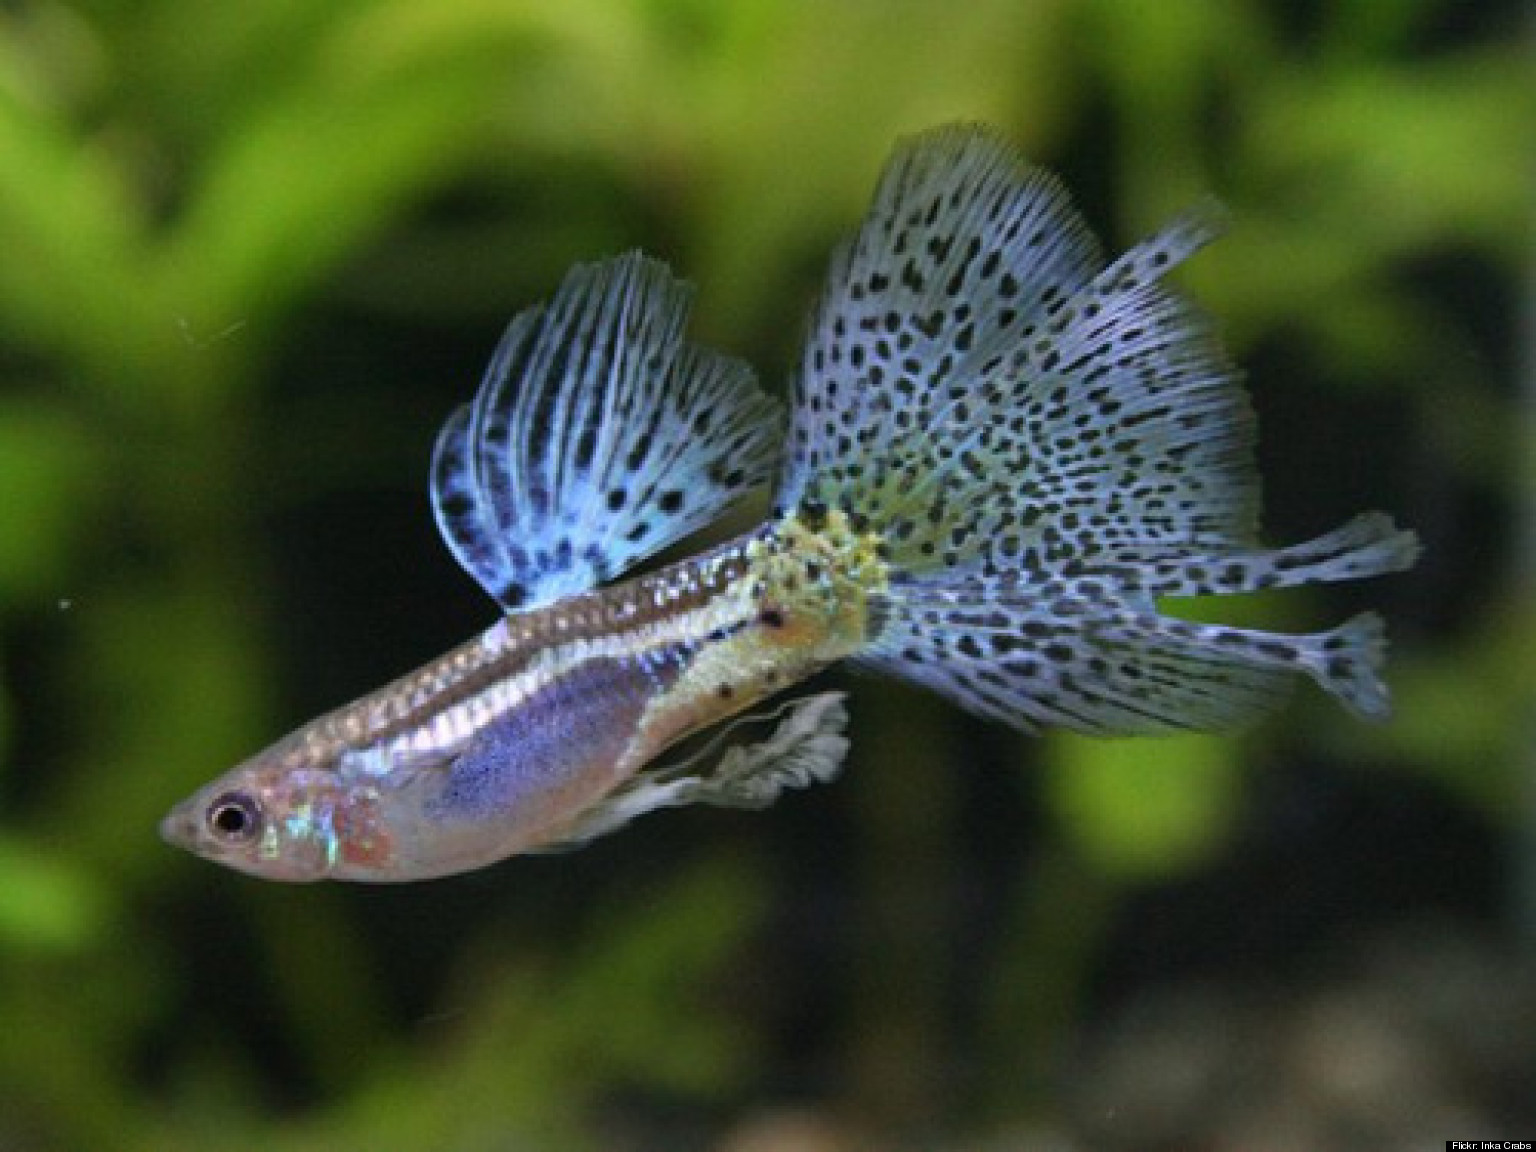 brain size study involving guppies suggests high intelligence comes